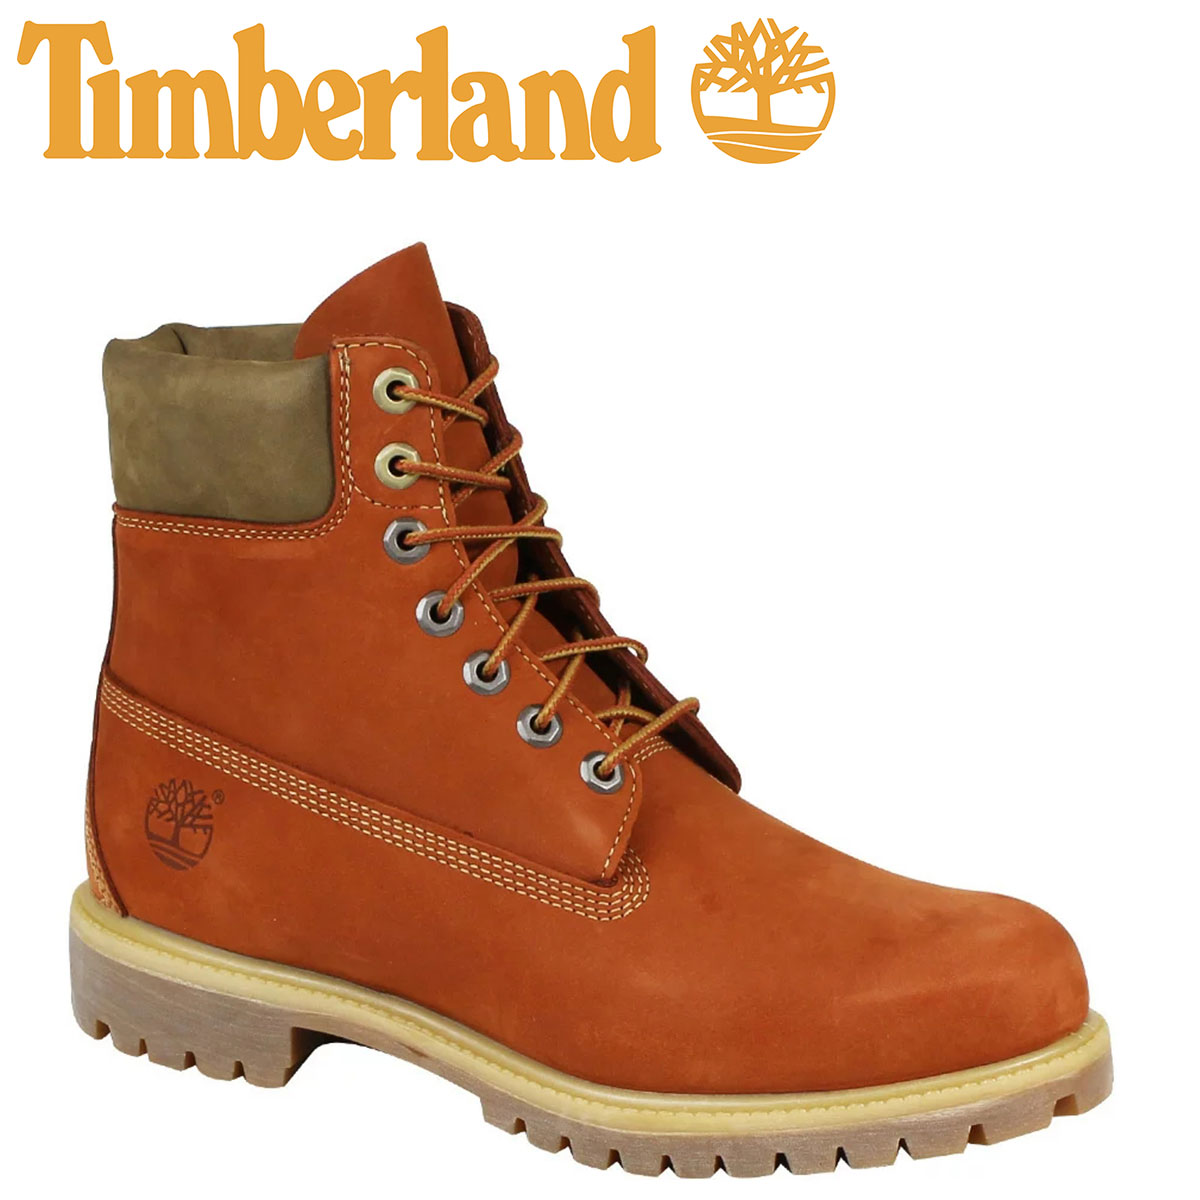 6 inches of Timberland Timberland boots men 6INCH PREMIUM WATERPROOF BOOTS A17YC W Wise premium waterproofing oranges